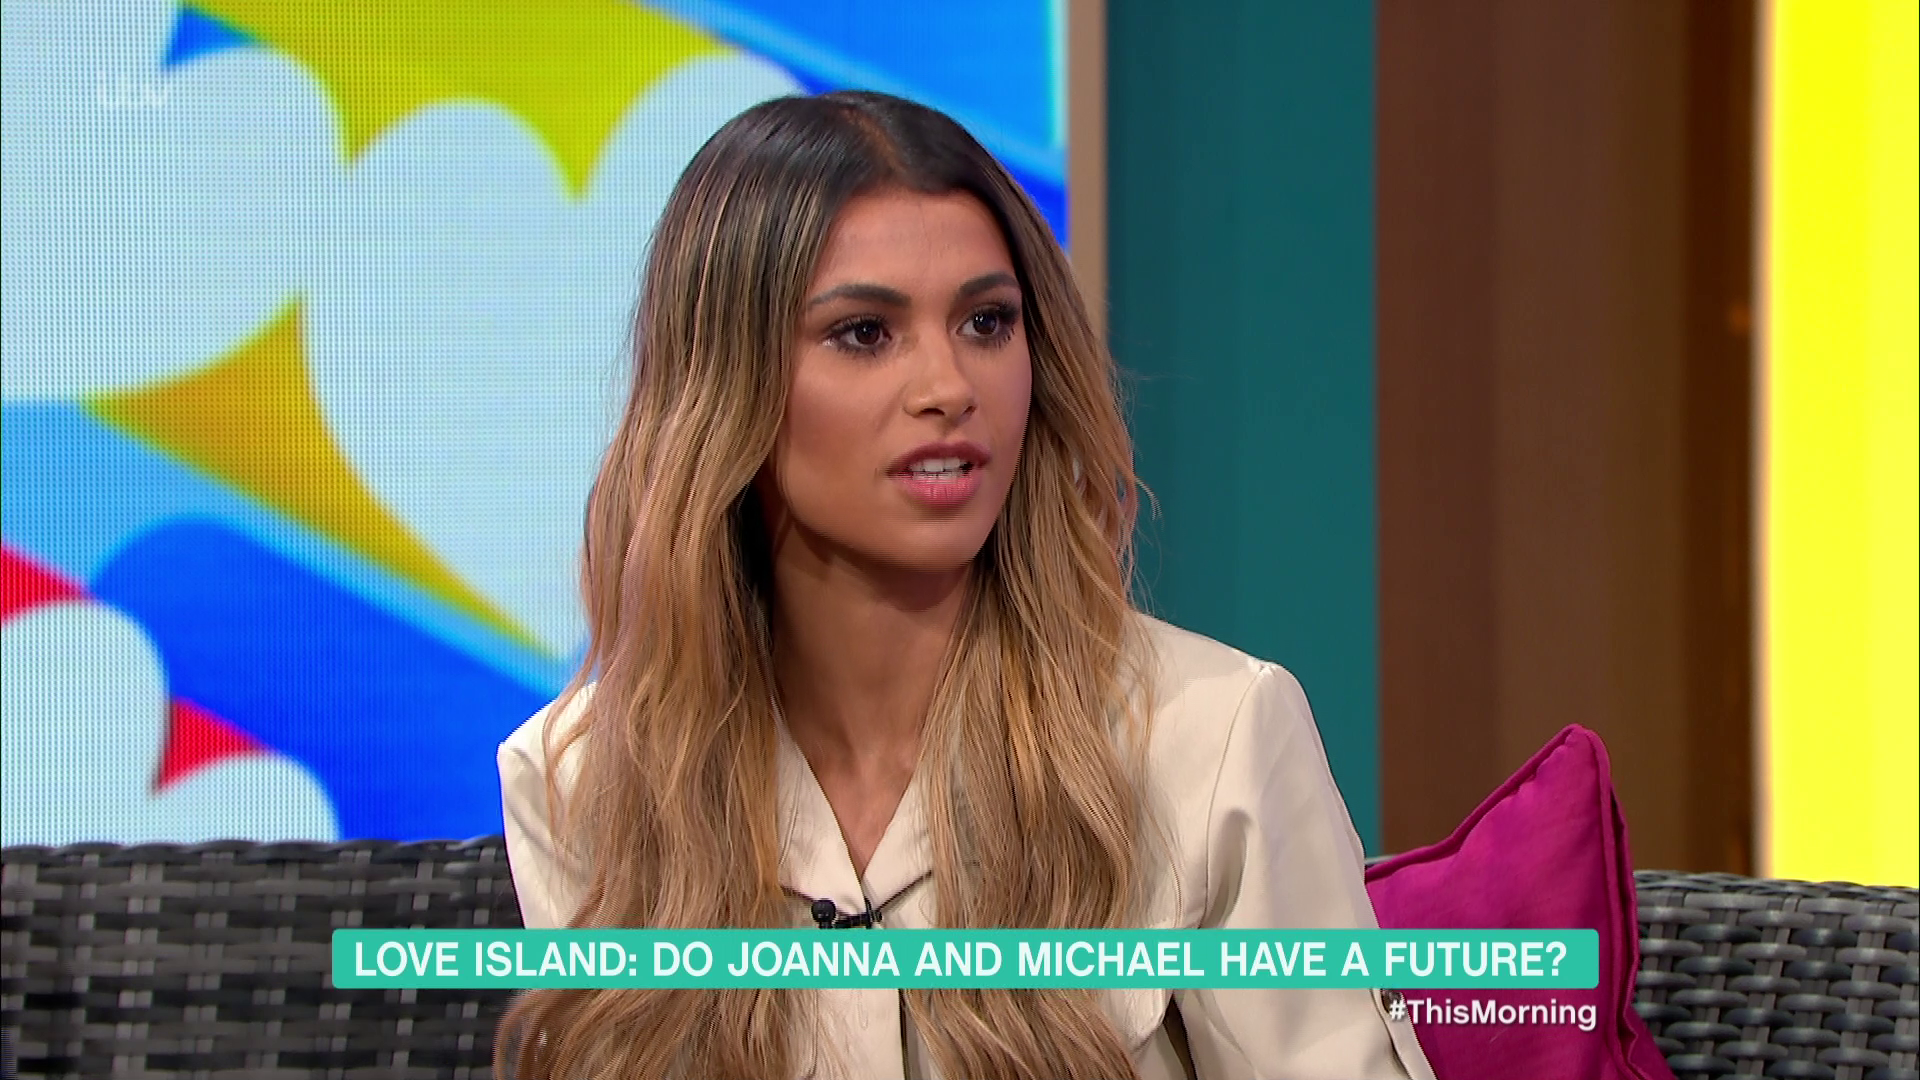 Love Island's Joanna WON'T give Michael a second chance